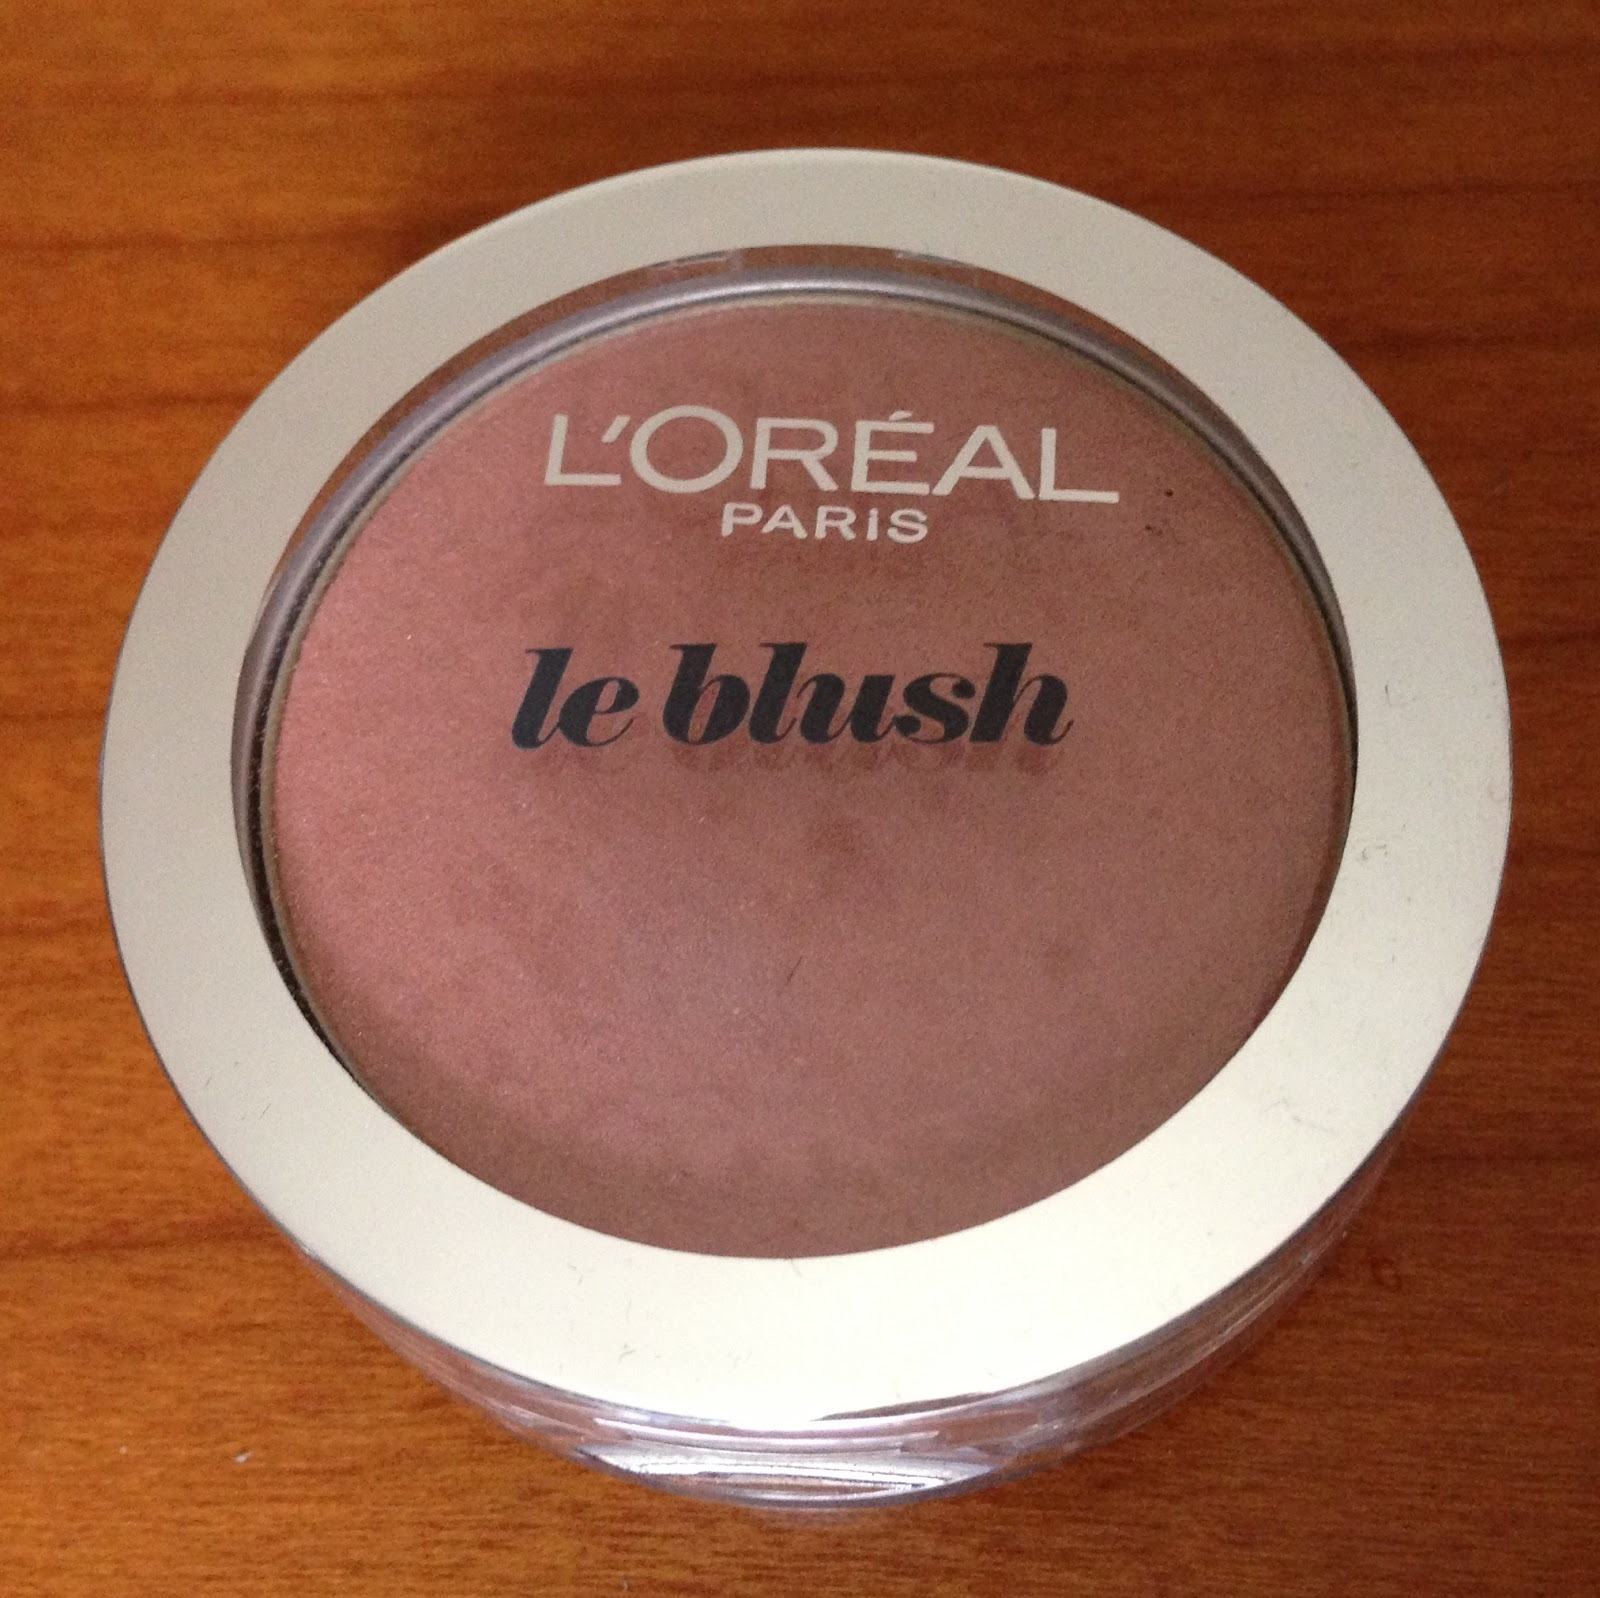 L'OREAL TRUE MATCH BLUSH IN 140 OLD ROSE